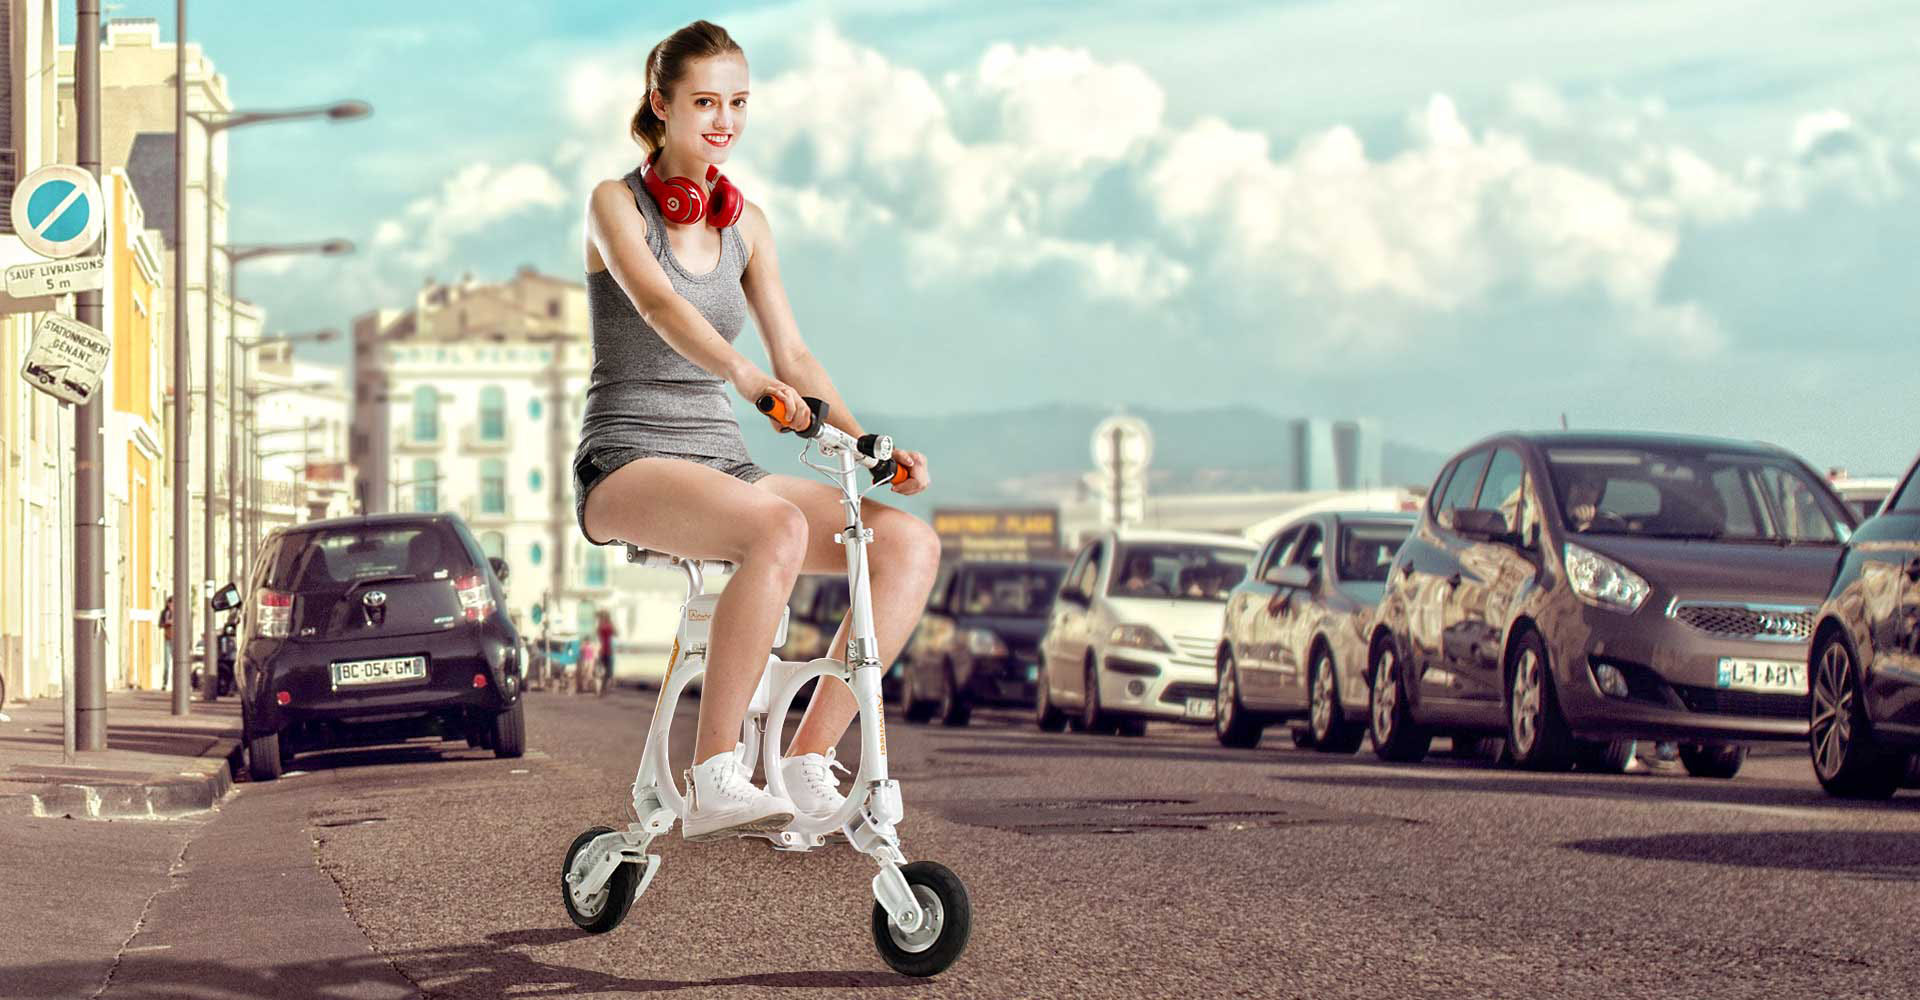 Airwheel E3 folding e bike